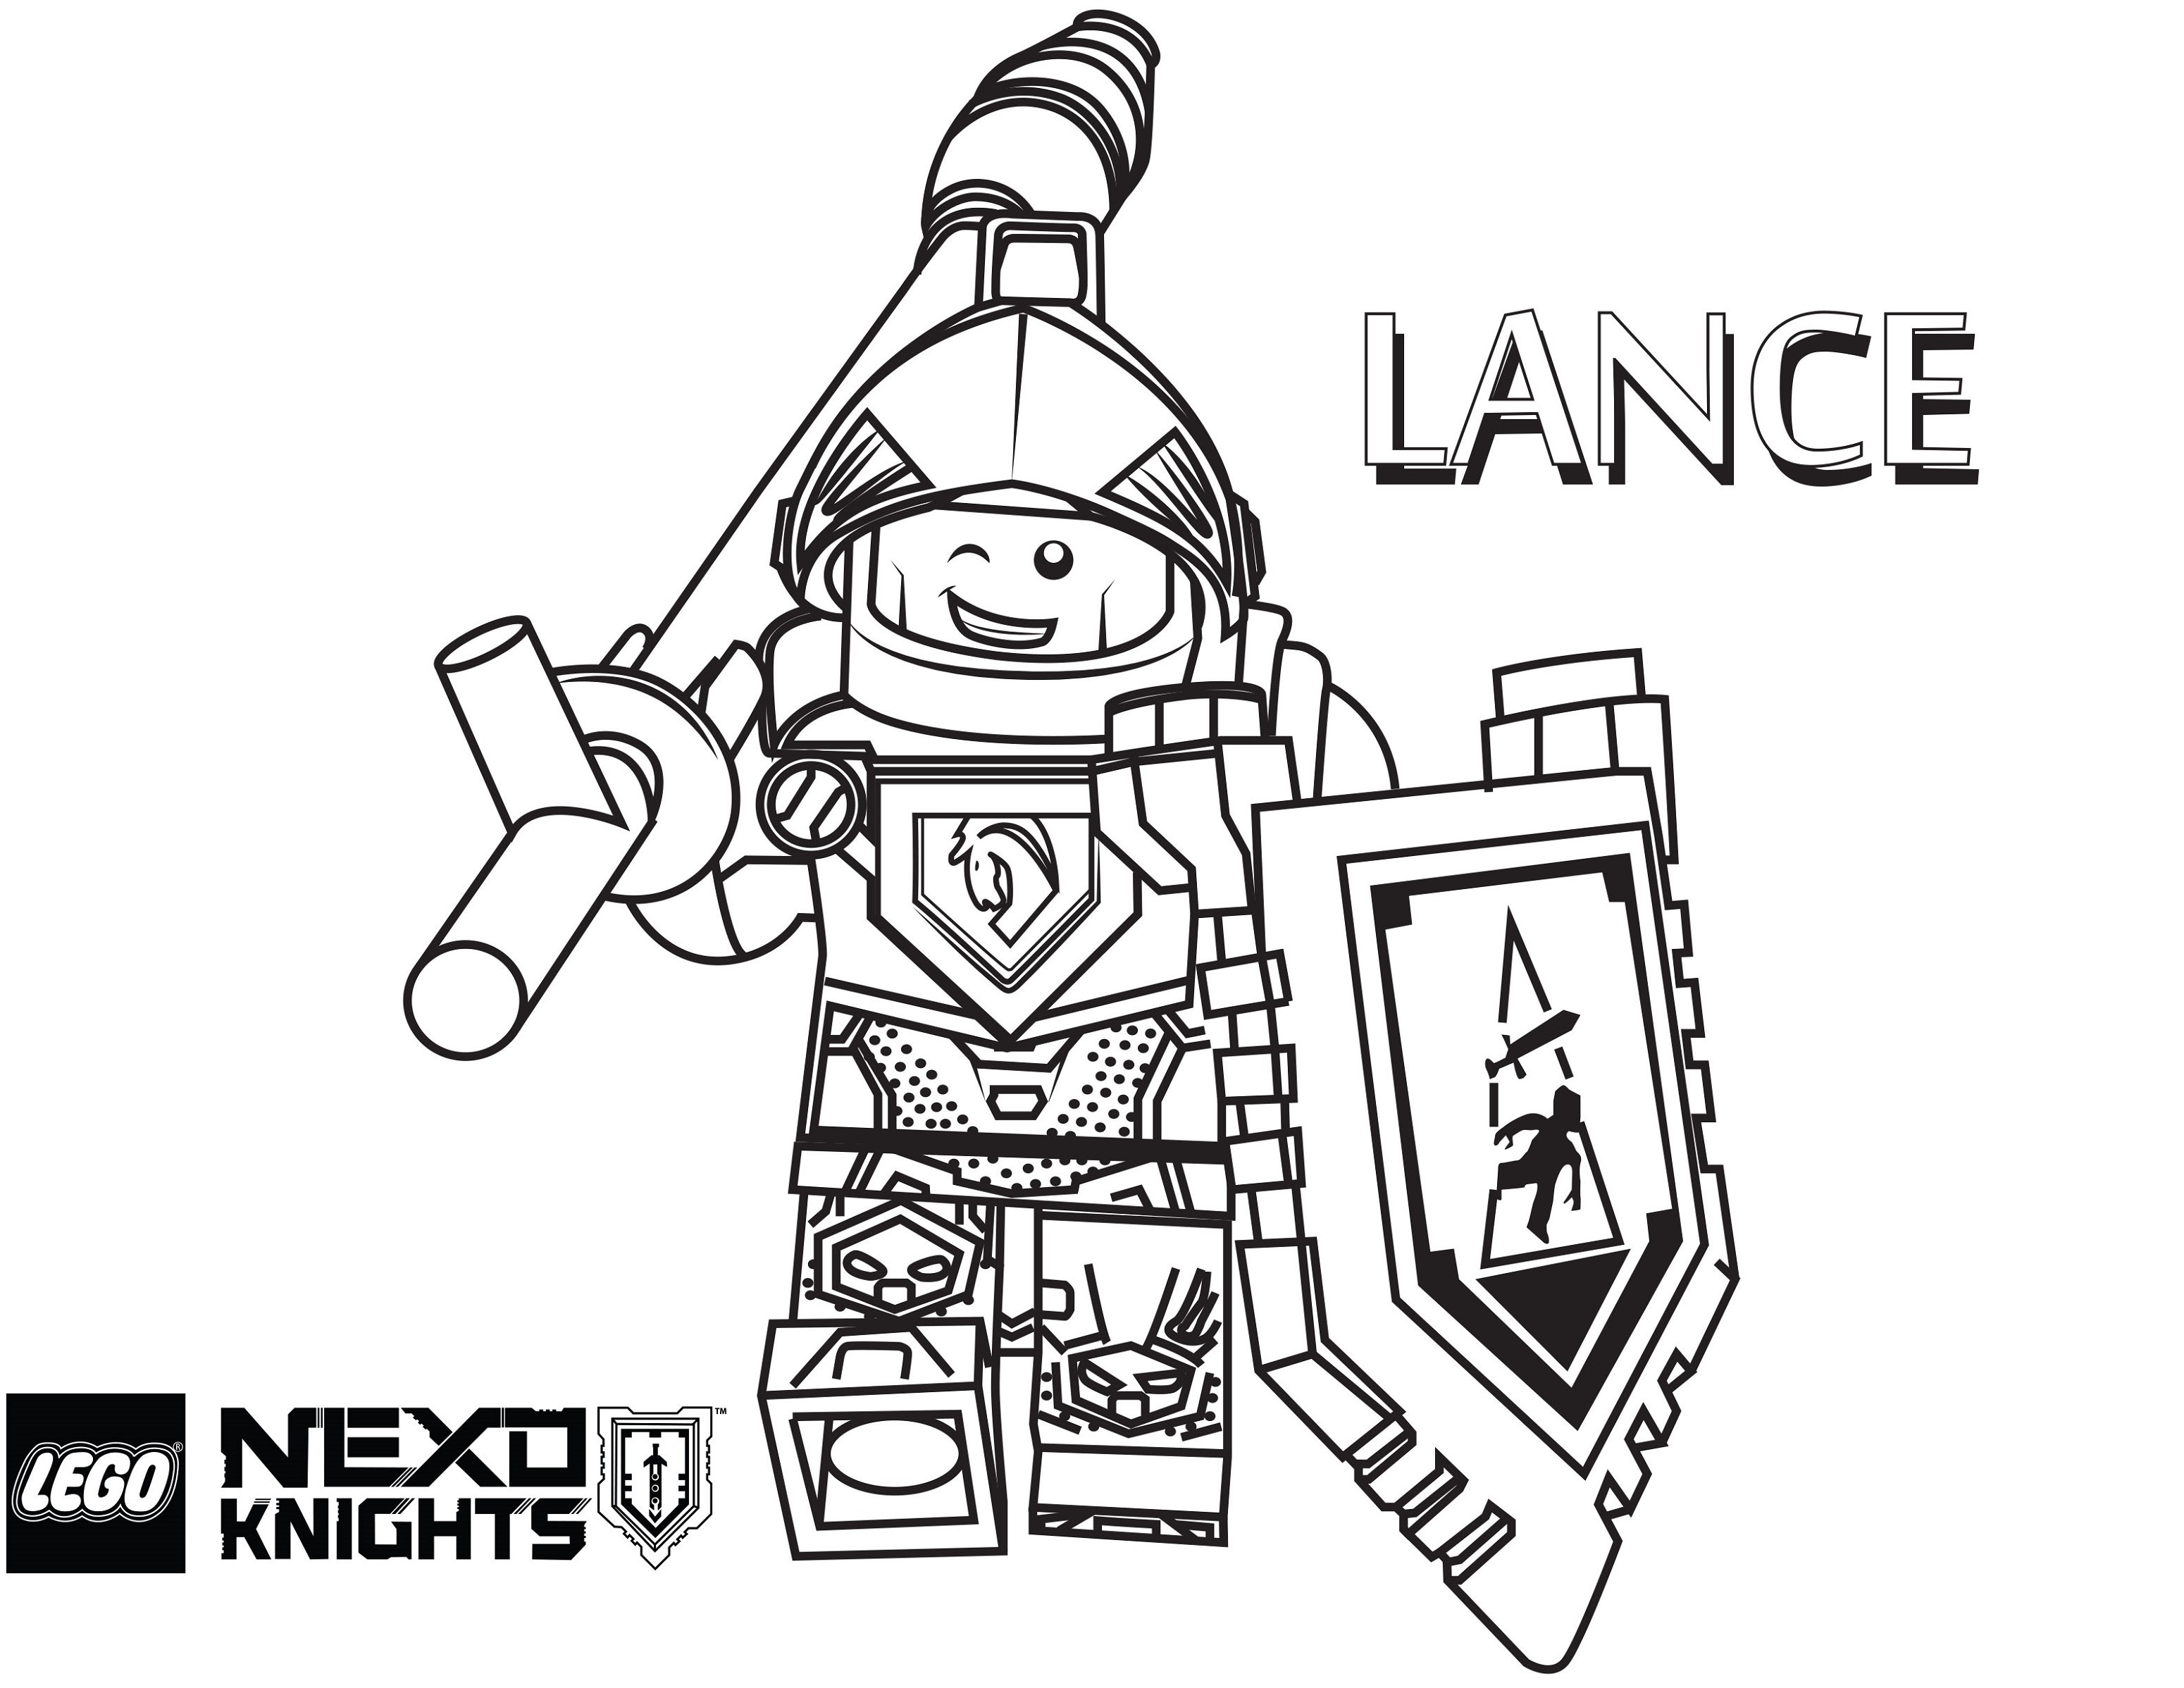 Lego Nexo Knights Coloring Pages Aaron